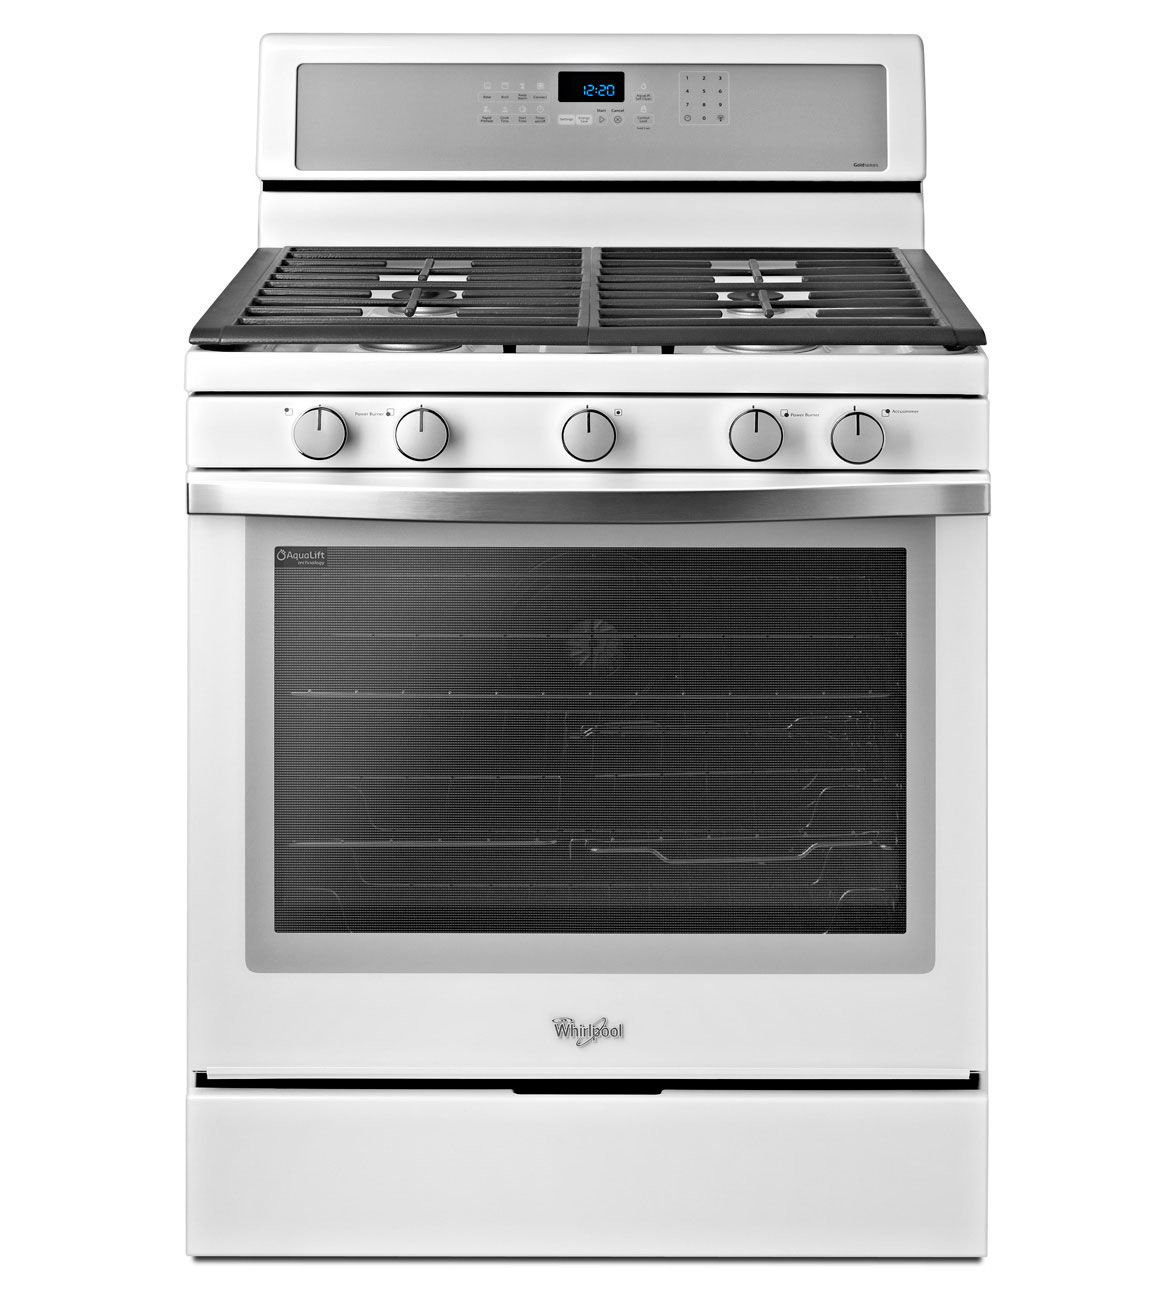 Whirlpool Gold 5 8 Cu Ft Capacity Gas Range With Rapid Preheat Option In White Ice